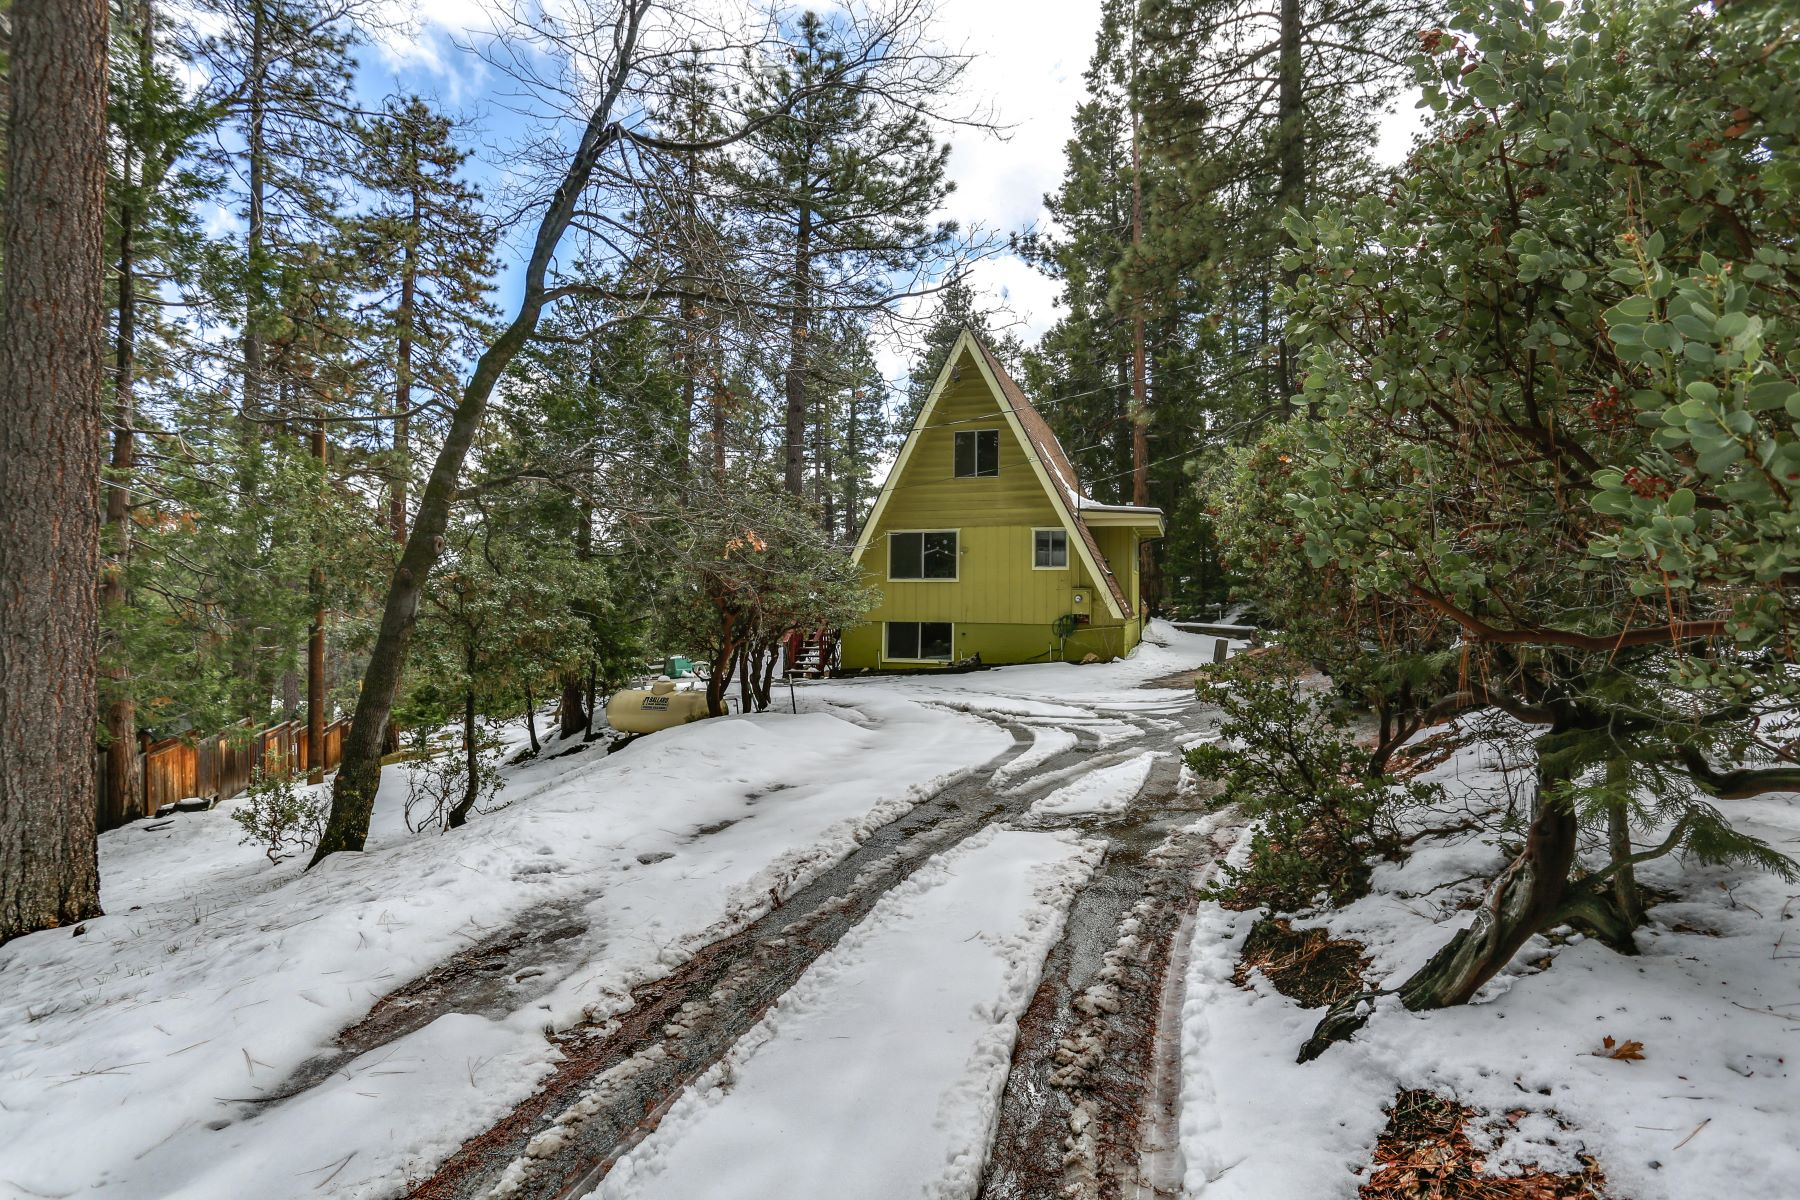 Single Family Homes for Active at 53087 Overlook Dr Idyllwild, California 92549 United States